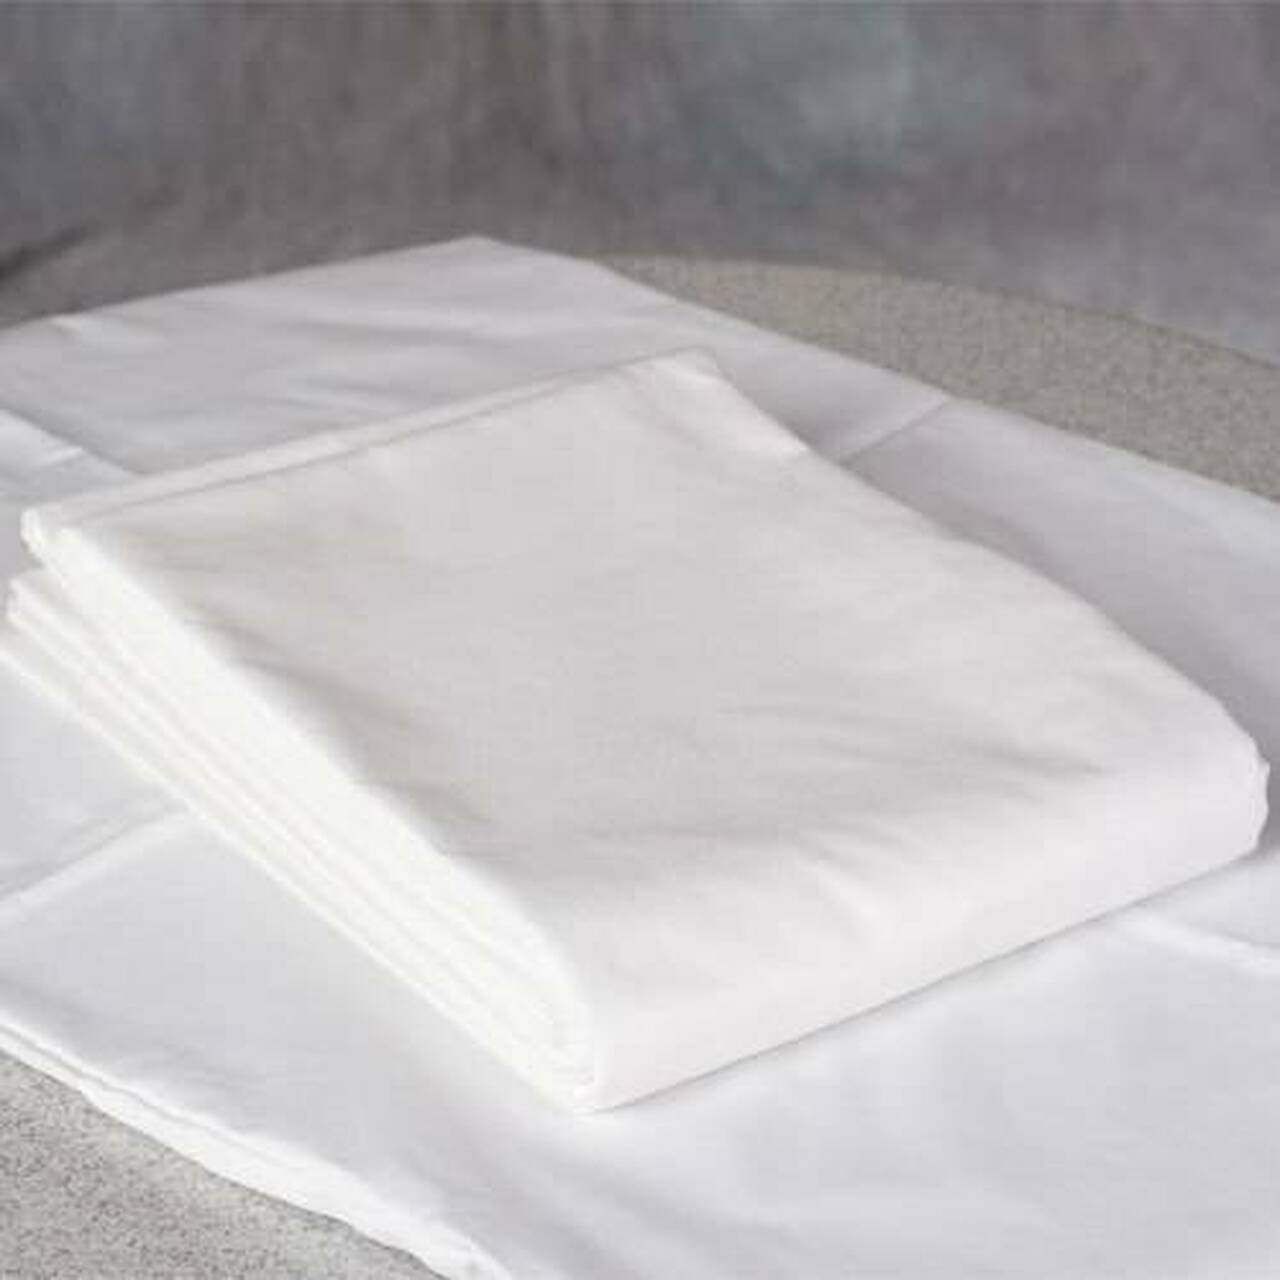 Oxford Super Blend by Ganesh Mills Ganesh Mills or Oxford or Micro Superblend Pillowcase or Pack of 2-12